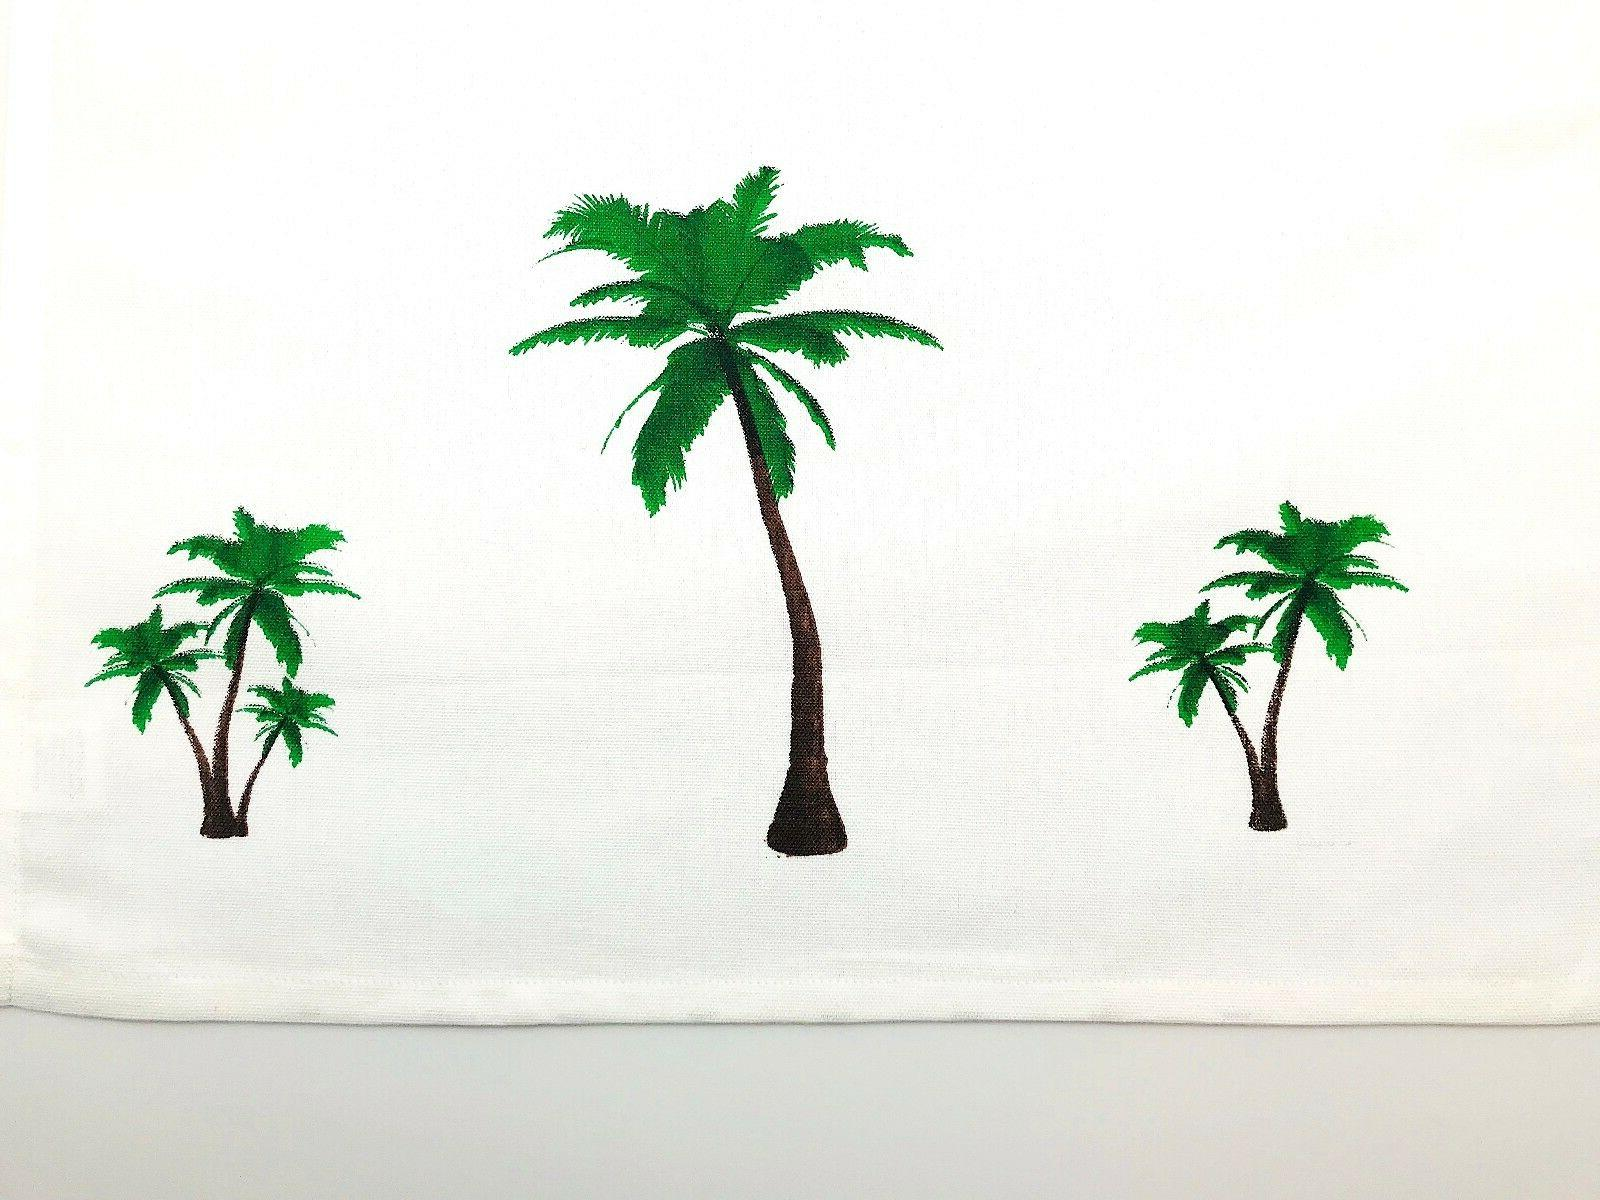 Tropical Towels: Simply Refreshing Design, Set of 2